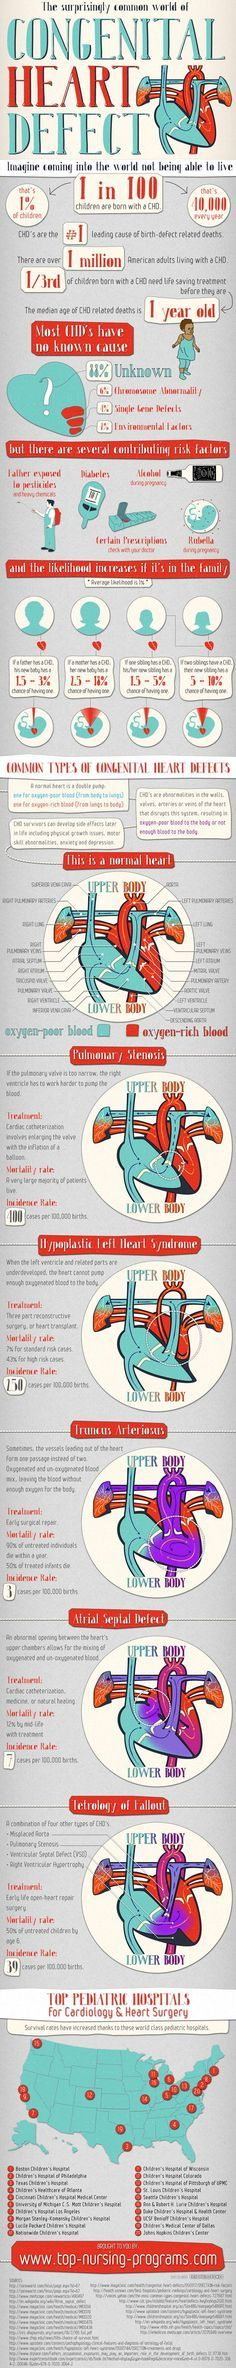 ☤ MD ☞☆☆☆ Congenital Heart Defects Statistics : This infographic depicts the sad truth about children coming to life with heart defect. The most shocking fact is that about 88% of CHD occurrences show no lead to the cause while environmental and genetic factors account for 12% of incidents. with (40,000 babies in the U.S. per year).